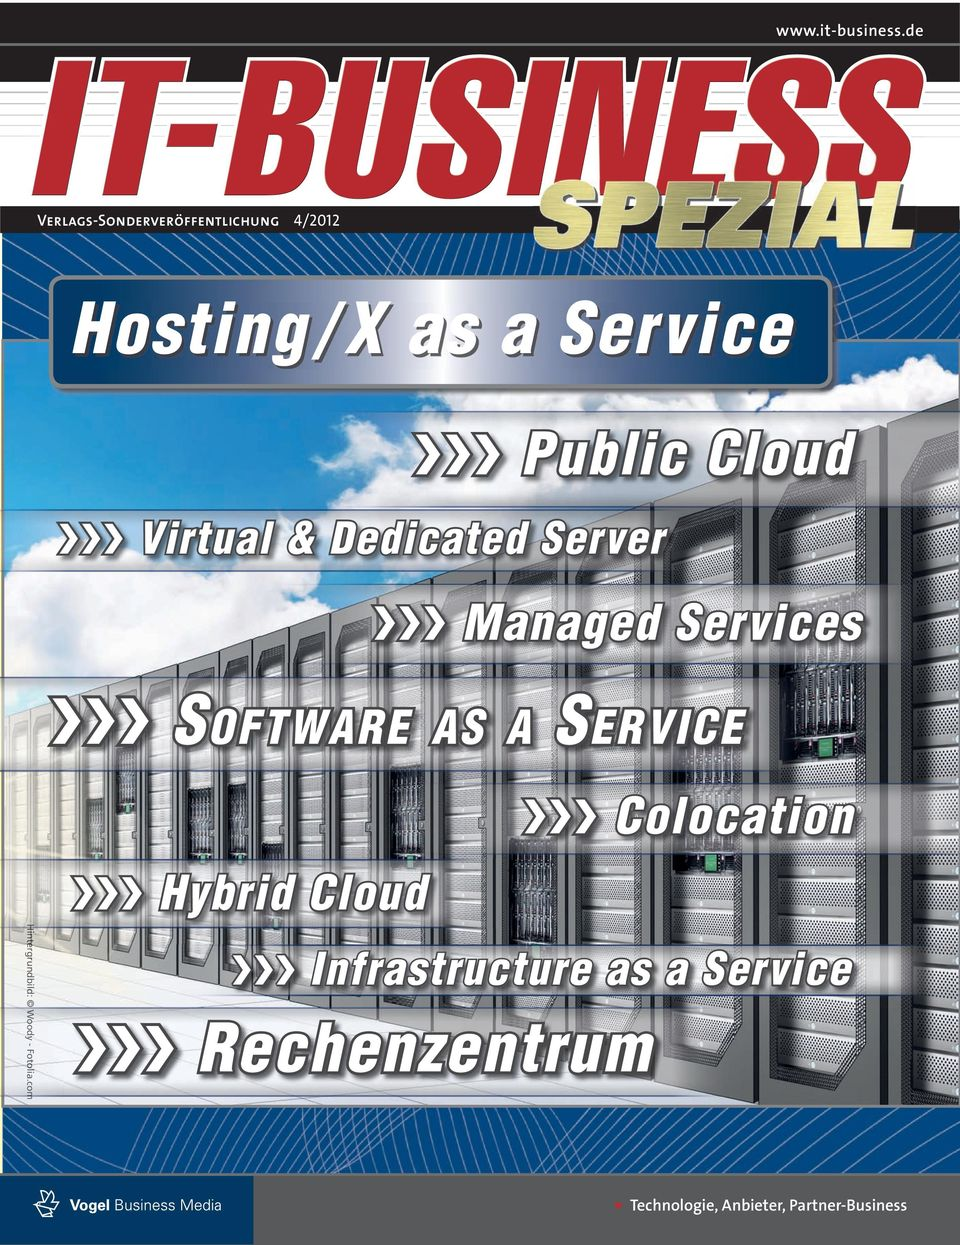 Dedicated Server VVV Managed Services VVV S OFTWARE AS A S ERVICE VVV Colocation Hiin Hin H inte